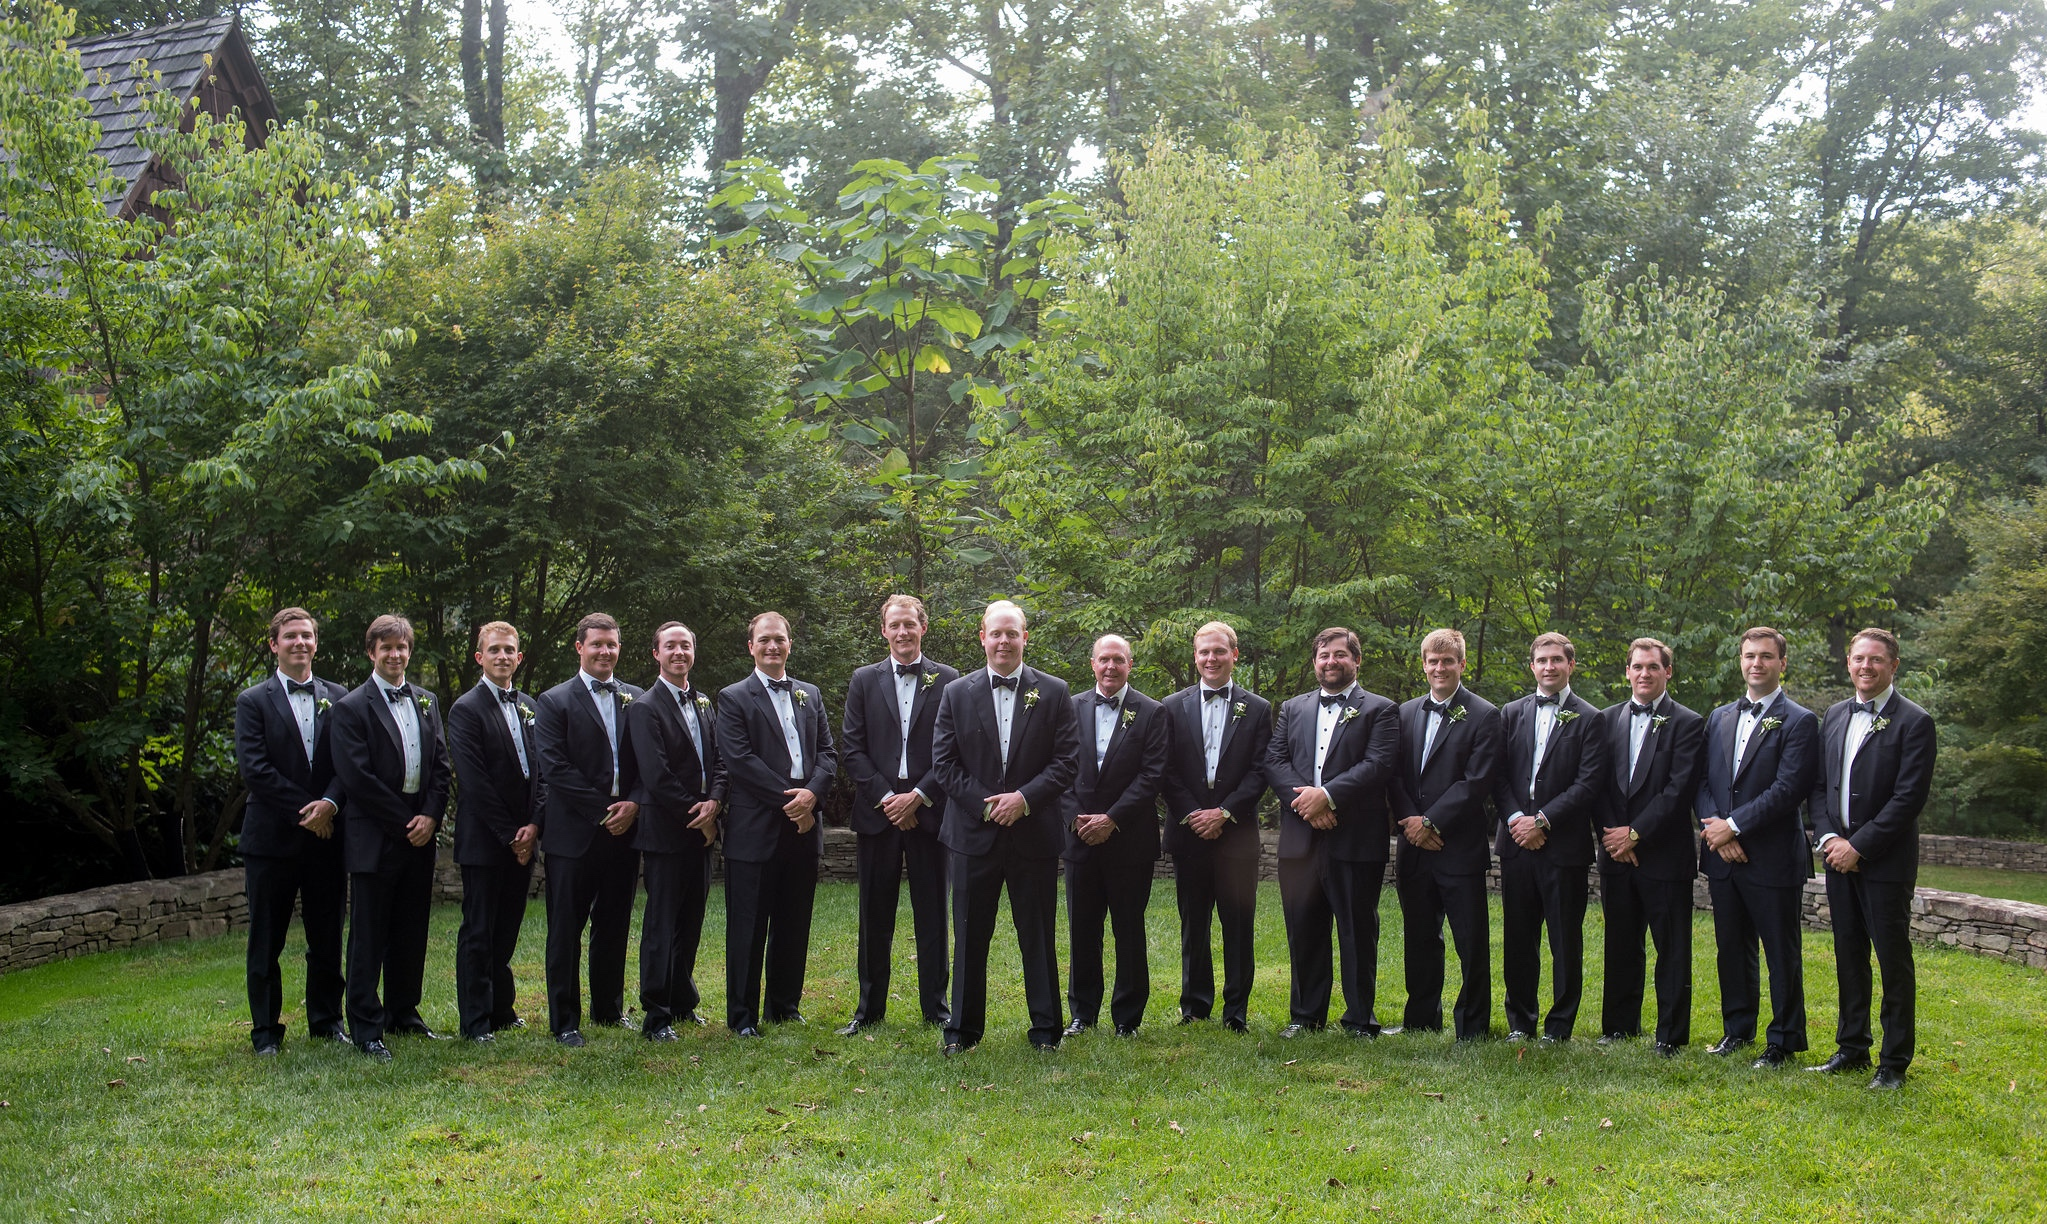 North Carolina Wedding, Events by Reagan, Destination Wedding Planner, Groom, Groomsmen